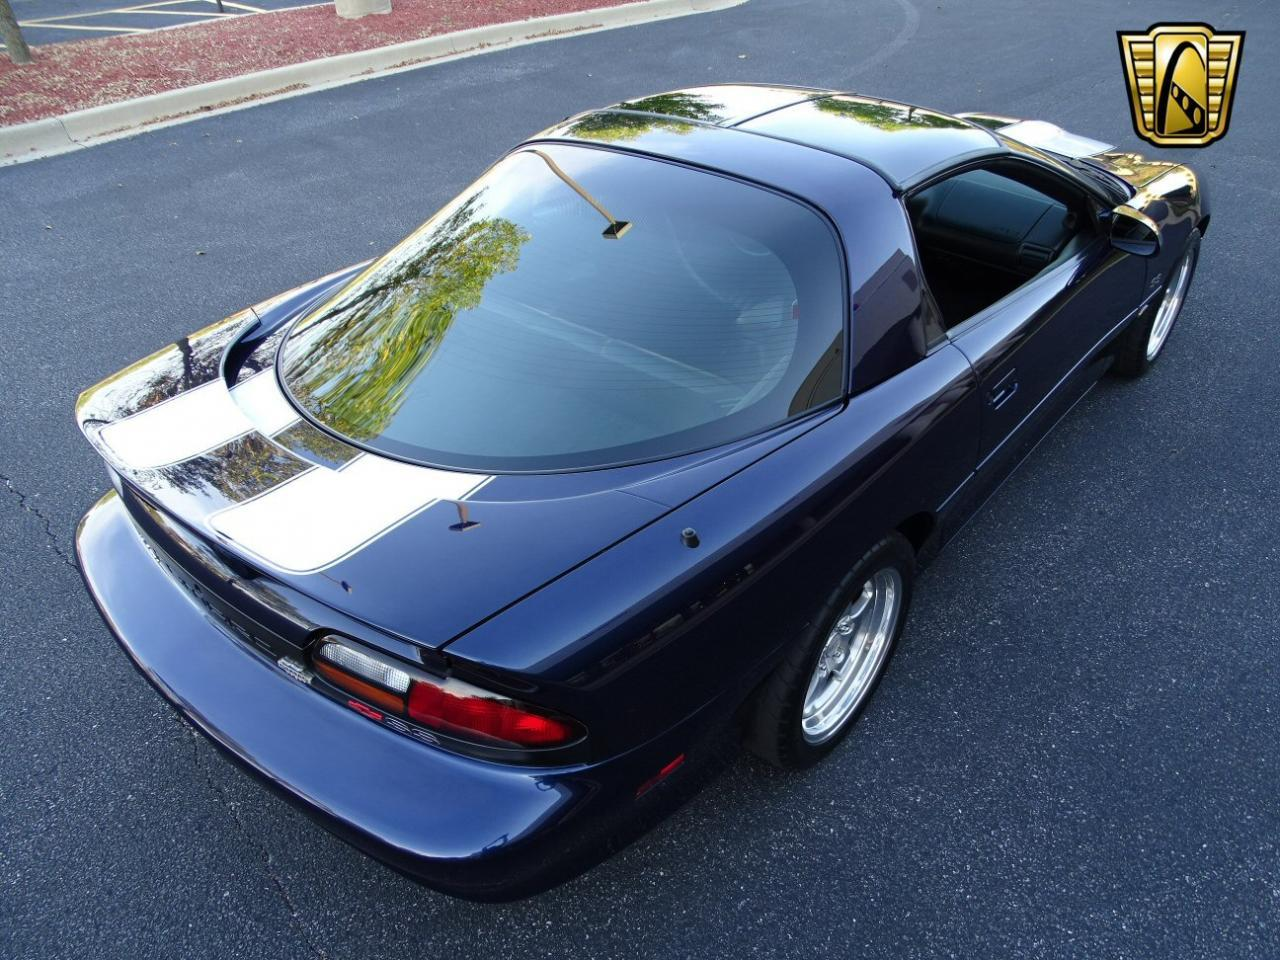 Large Picture of '02 Camaro located in Illinois - $53,000.00 - KDSG